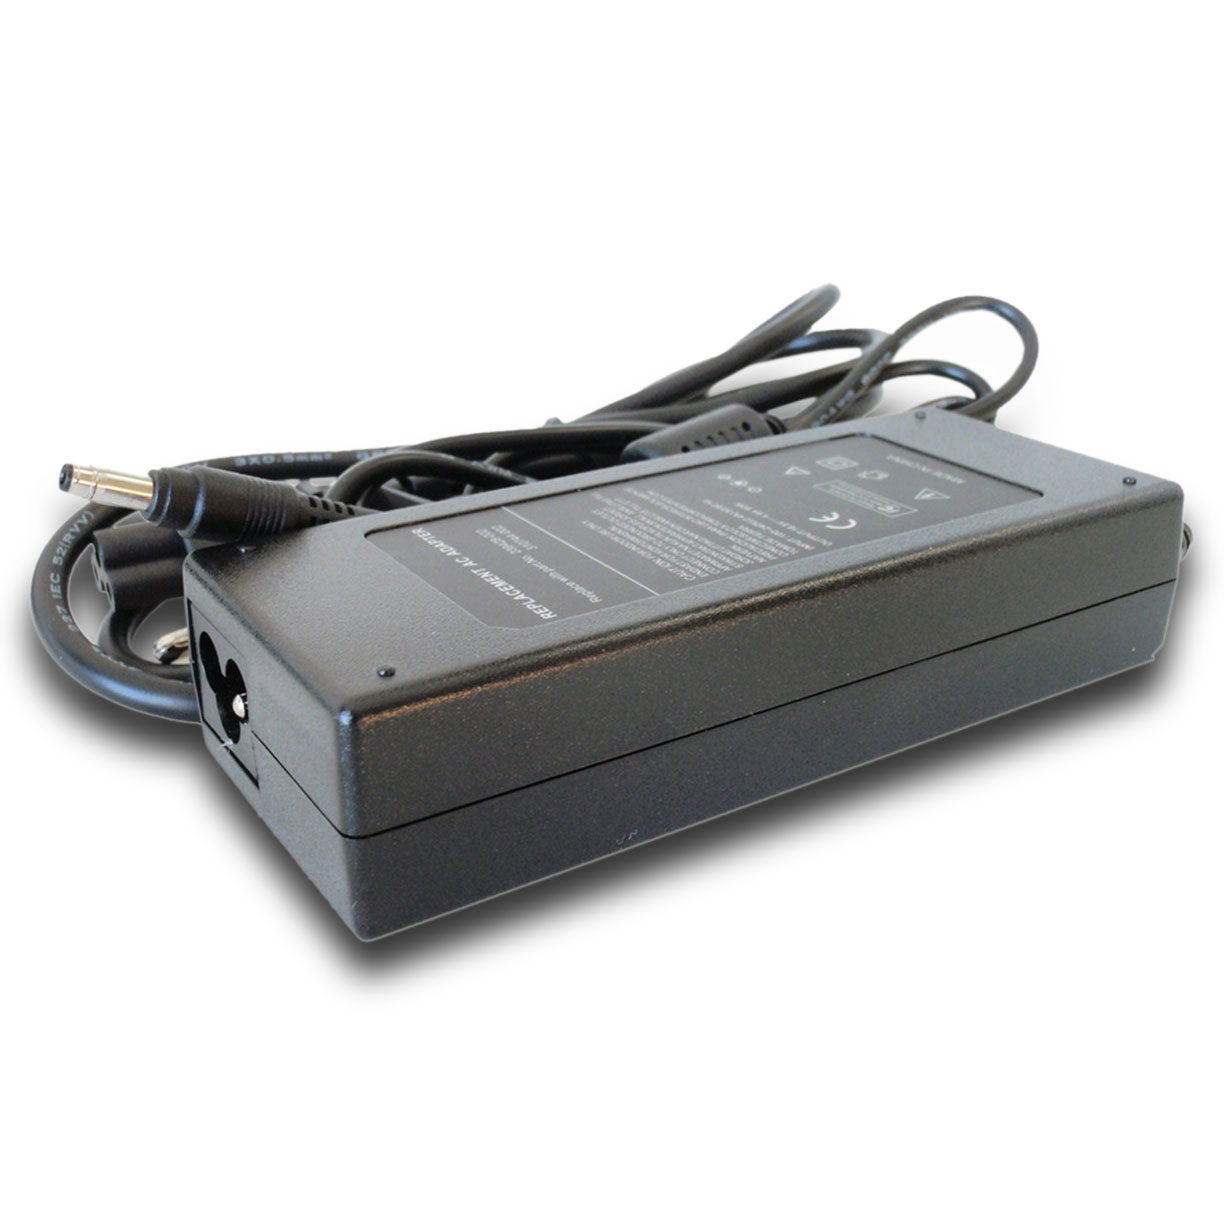 HP AC Power Adapter Battery Charger Power Supply for HP Pavilion dv9600  dv9700 dv6400 dv6500 dv9800 as Replacement Part at Sears.com